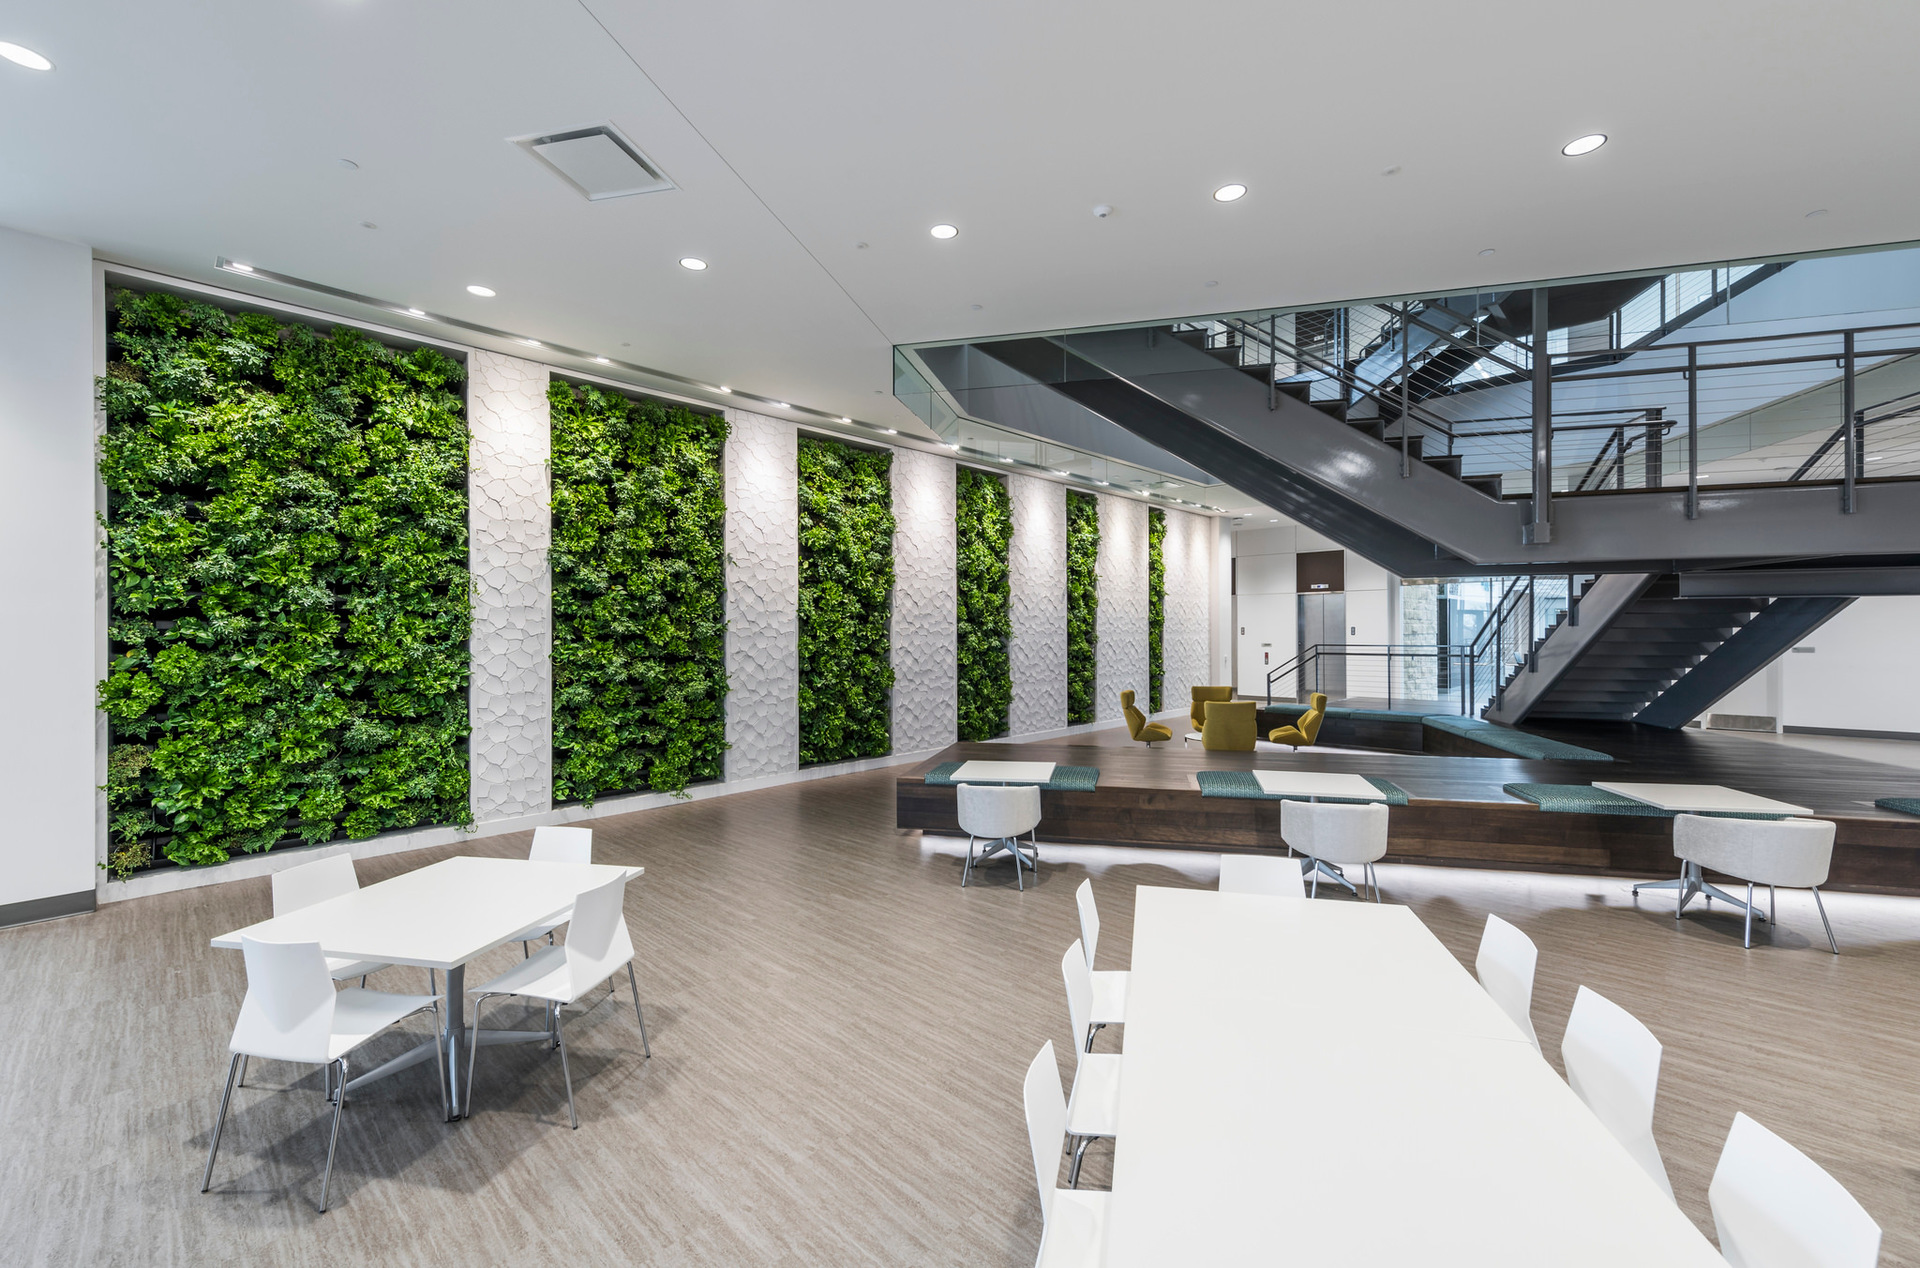 Green living walls are an emerging architectural design feature in the urban built environment. Seen here by Natura.